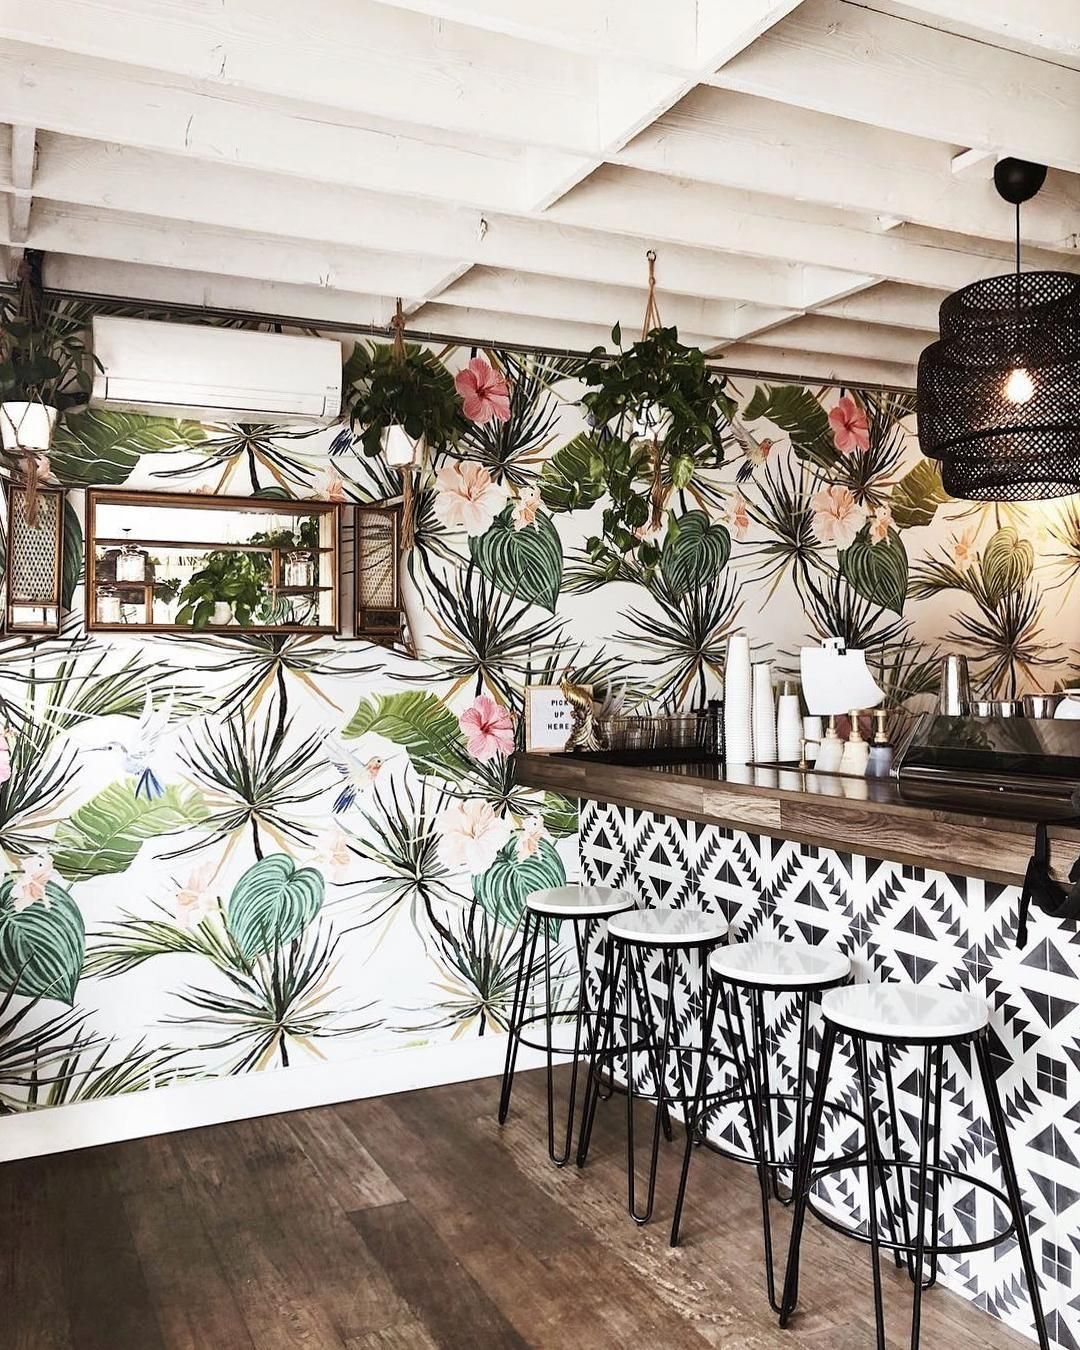 25 Of The Coolest Coffee Shops In San Diego San Diego Shopping San Diego Coffee Shops San Diego Vacation